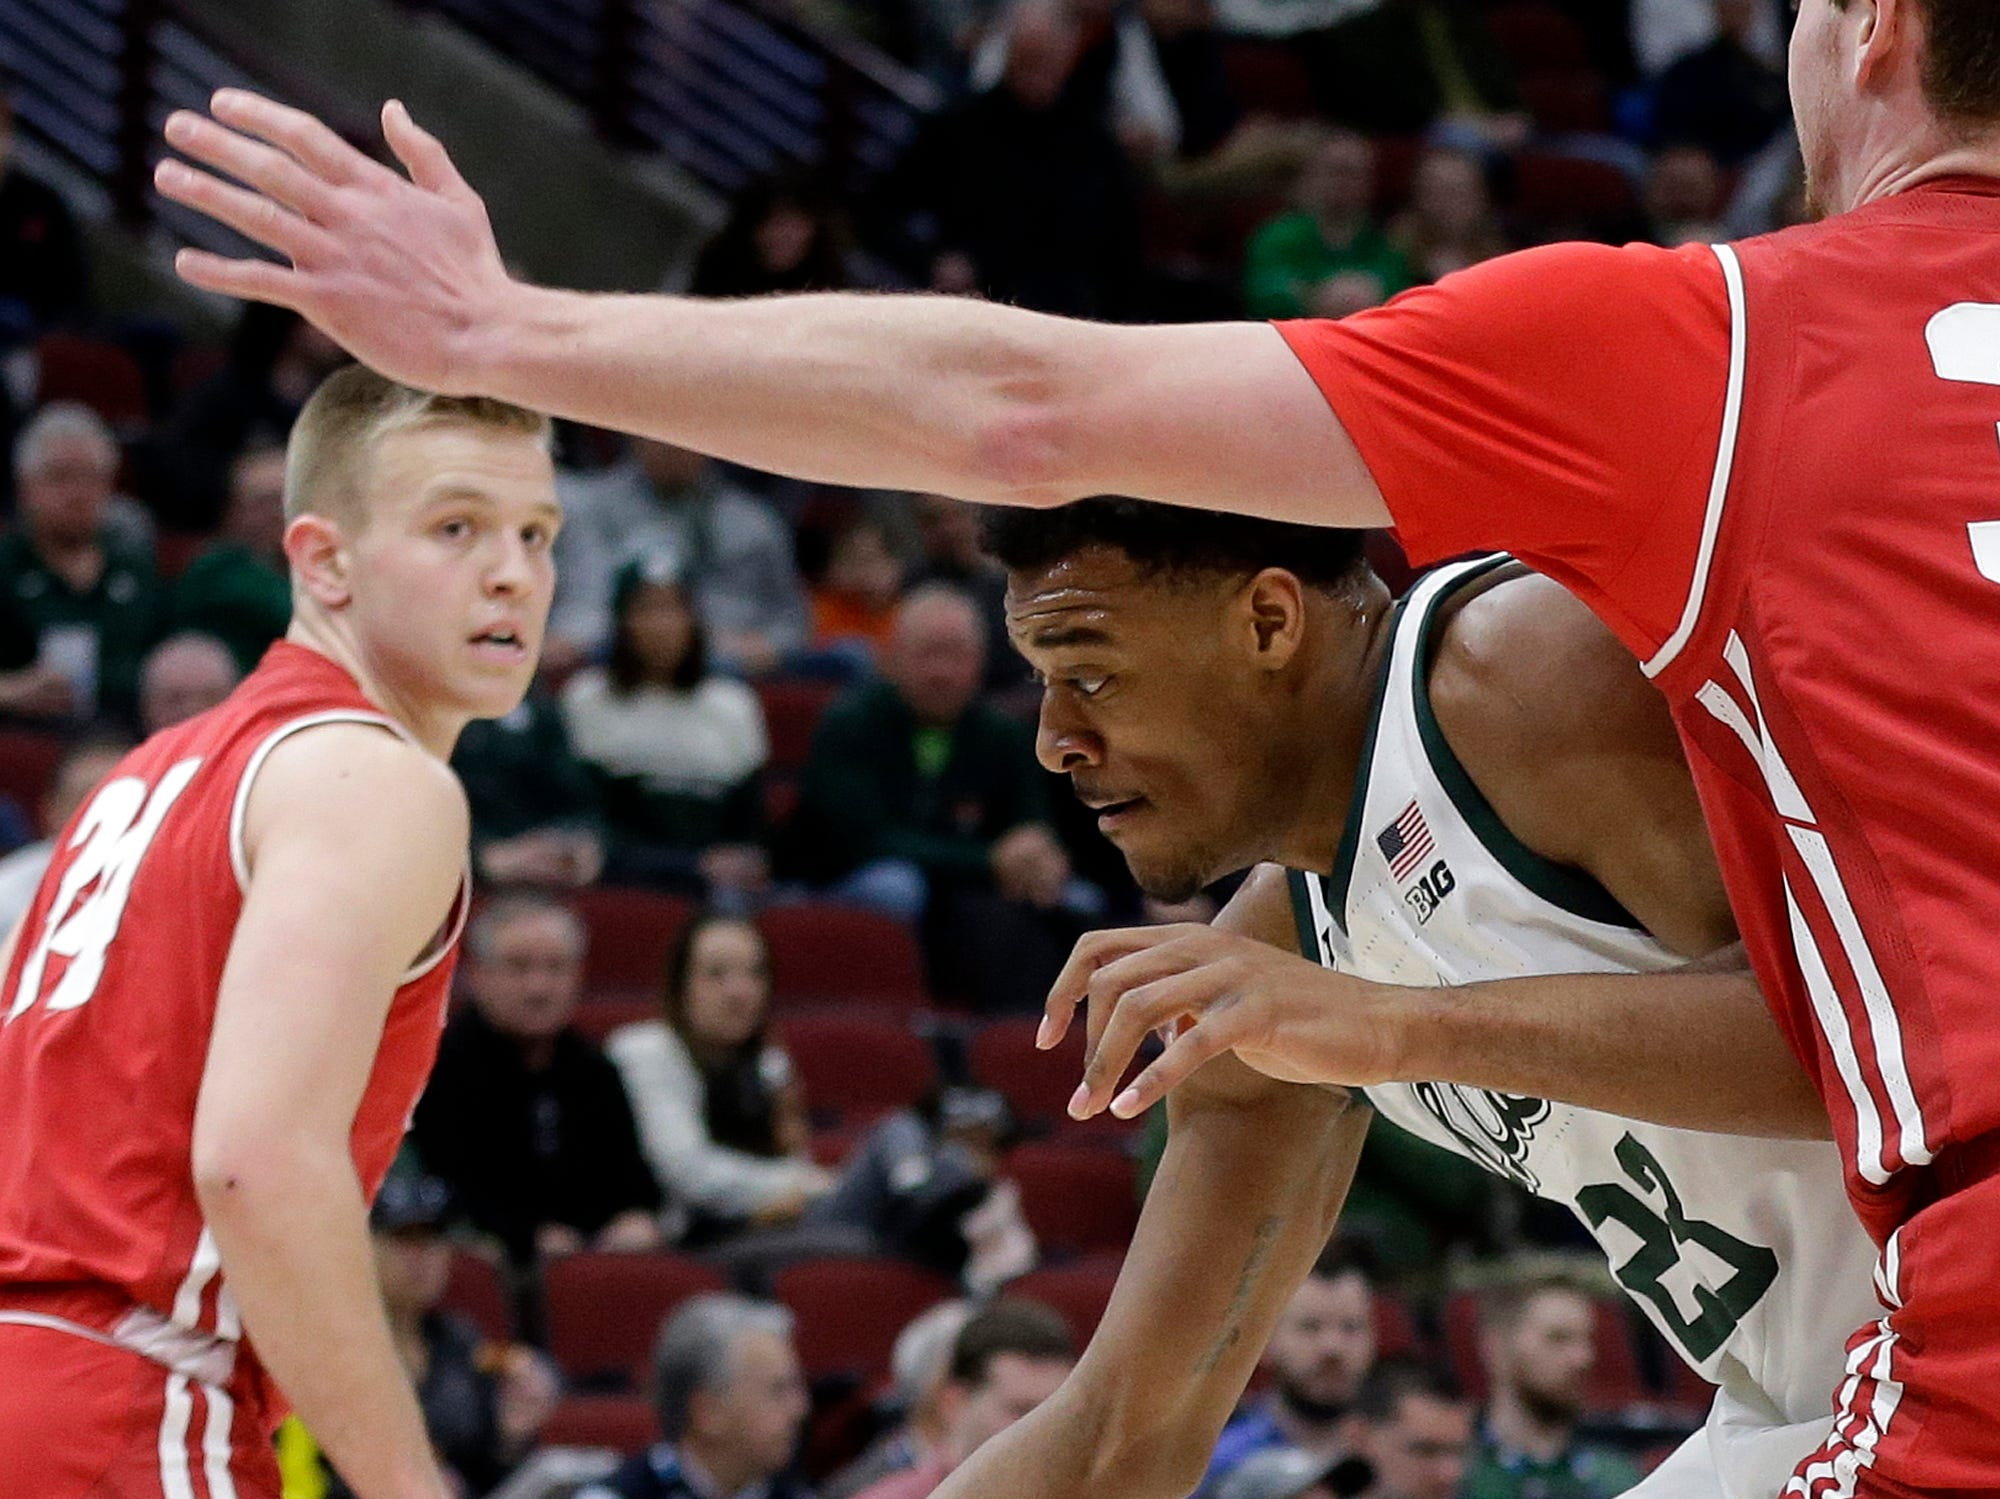 Michigan State's Xavier Tillman (23) drives against Wisconsin's Nate Reuvers during the first half of an NCAA college basketball game in the semifinals of the Big Ten Conference tournament, Saturday, March 16, 2019, in Chicago.